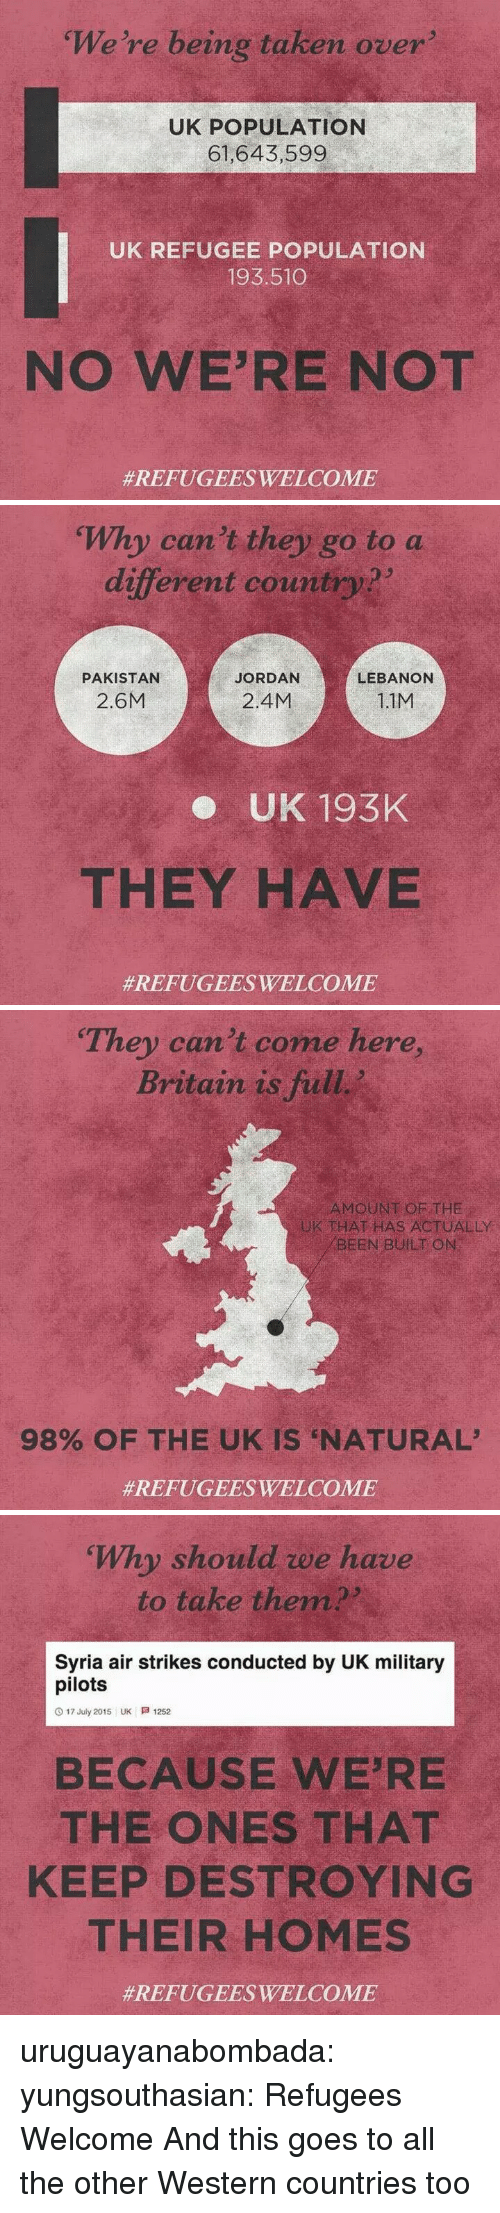 Taken, Tumblr, and Blog: We're being taken over  UK POPULATION  61,643,599  UK REFUGEE POPULATION  193.510  NO WE'RE NOT  #REFUGEESWELCOME   Why can't they go to a  different country?  PAKISTAN  JORDAN  LEBANON  2.6M  2.4M  1.1M  e UK 193K  THEY HAVE  #REFUGEESWELCOME   They can't come here,  Britain is full  AMOUNT OF THE  THAT HAS ACTUALLY  BEENBUİLT ON  98% OF THE UK IS 'NATURAL'  #REFUGEESWELCOME   Why should we have  to take them  Syria air strikes conducted by UK military  pilots  O 17 July 2015 UK 1252  BECAUSE WE'RE  THE ONES THAT  KEEP DESTROYING  THEIR HOMES  uruguayanabombada:  yungsouthasian: Refugees Welcome  And this goes to all the other Western countries too